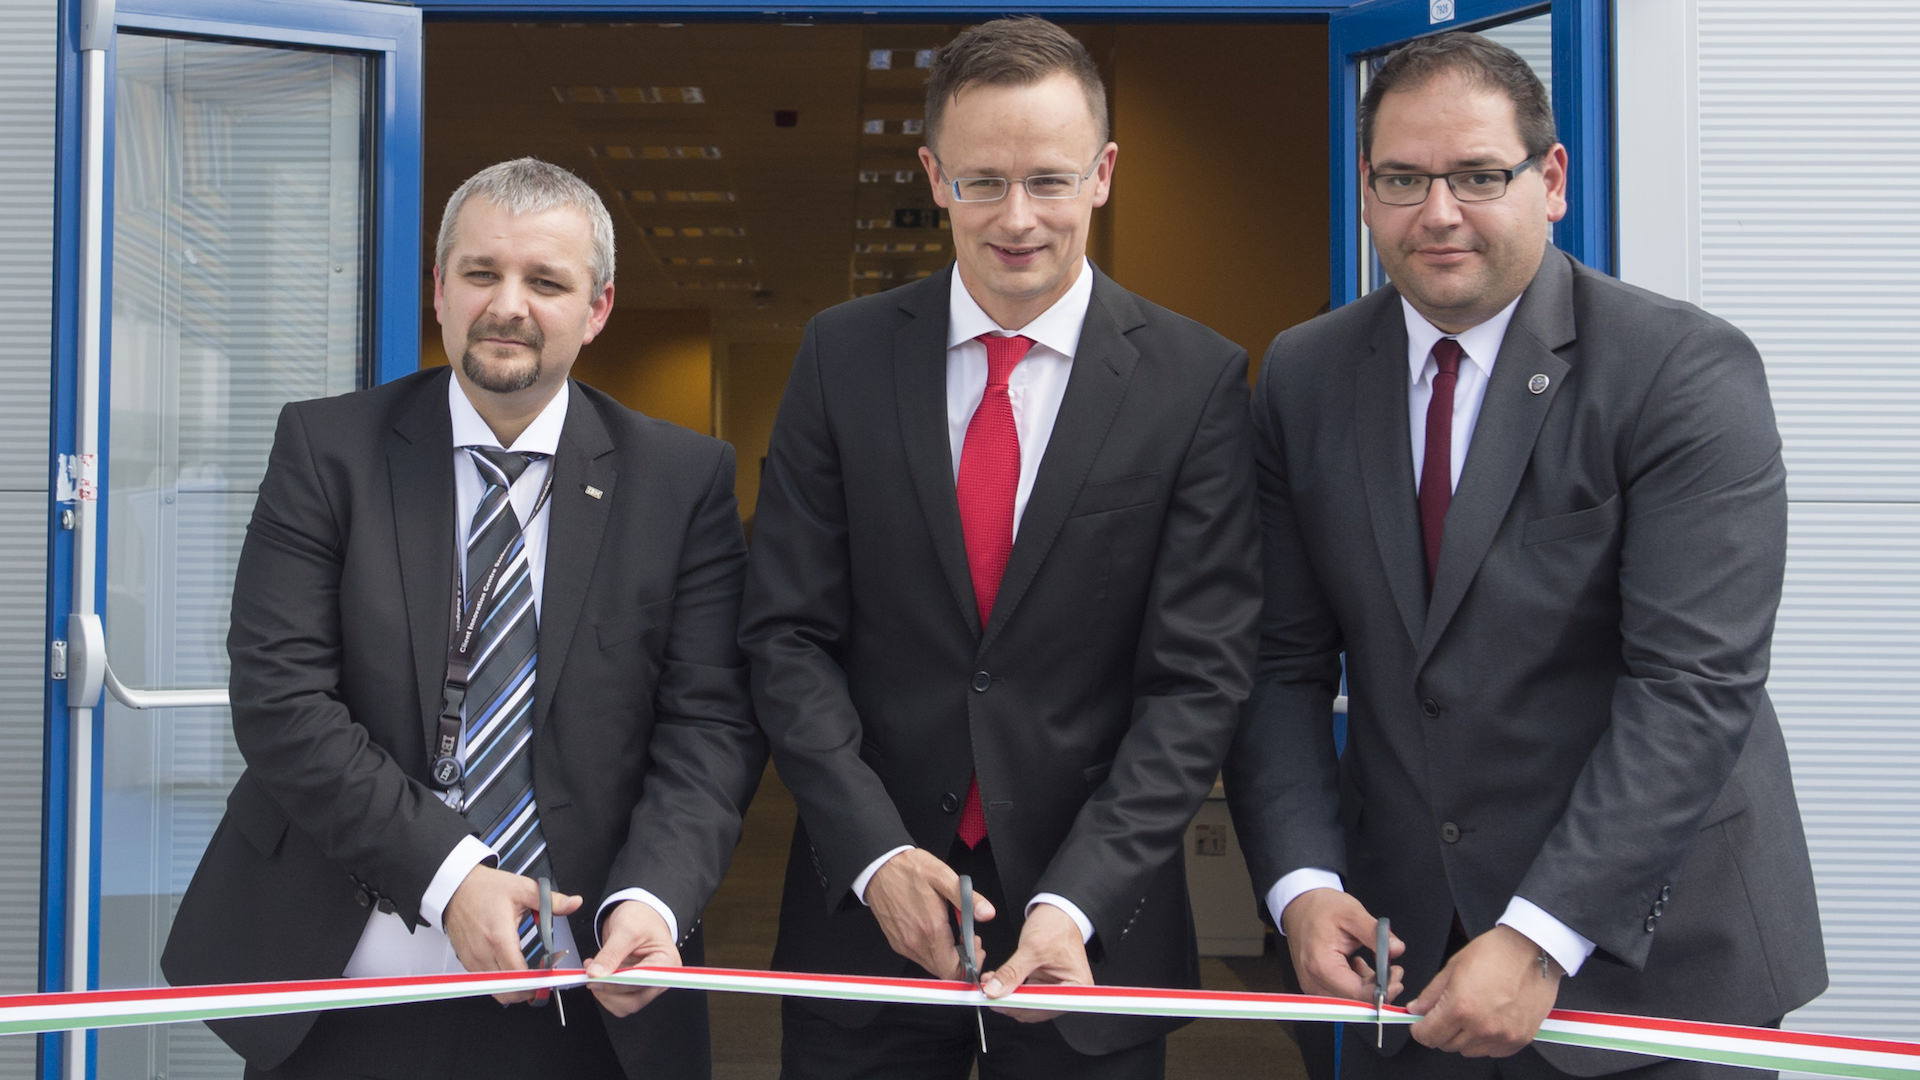 IBM expands in Székesfehérvár by employing over 400 people